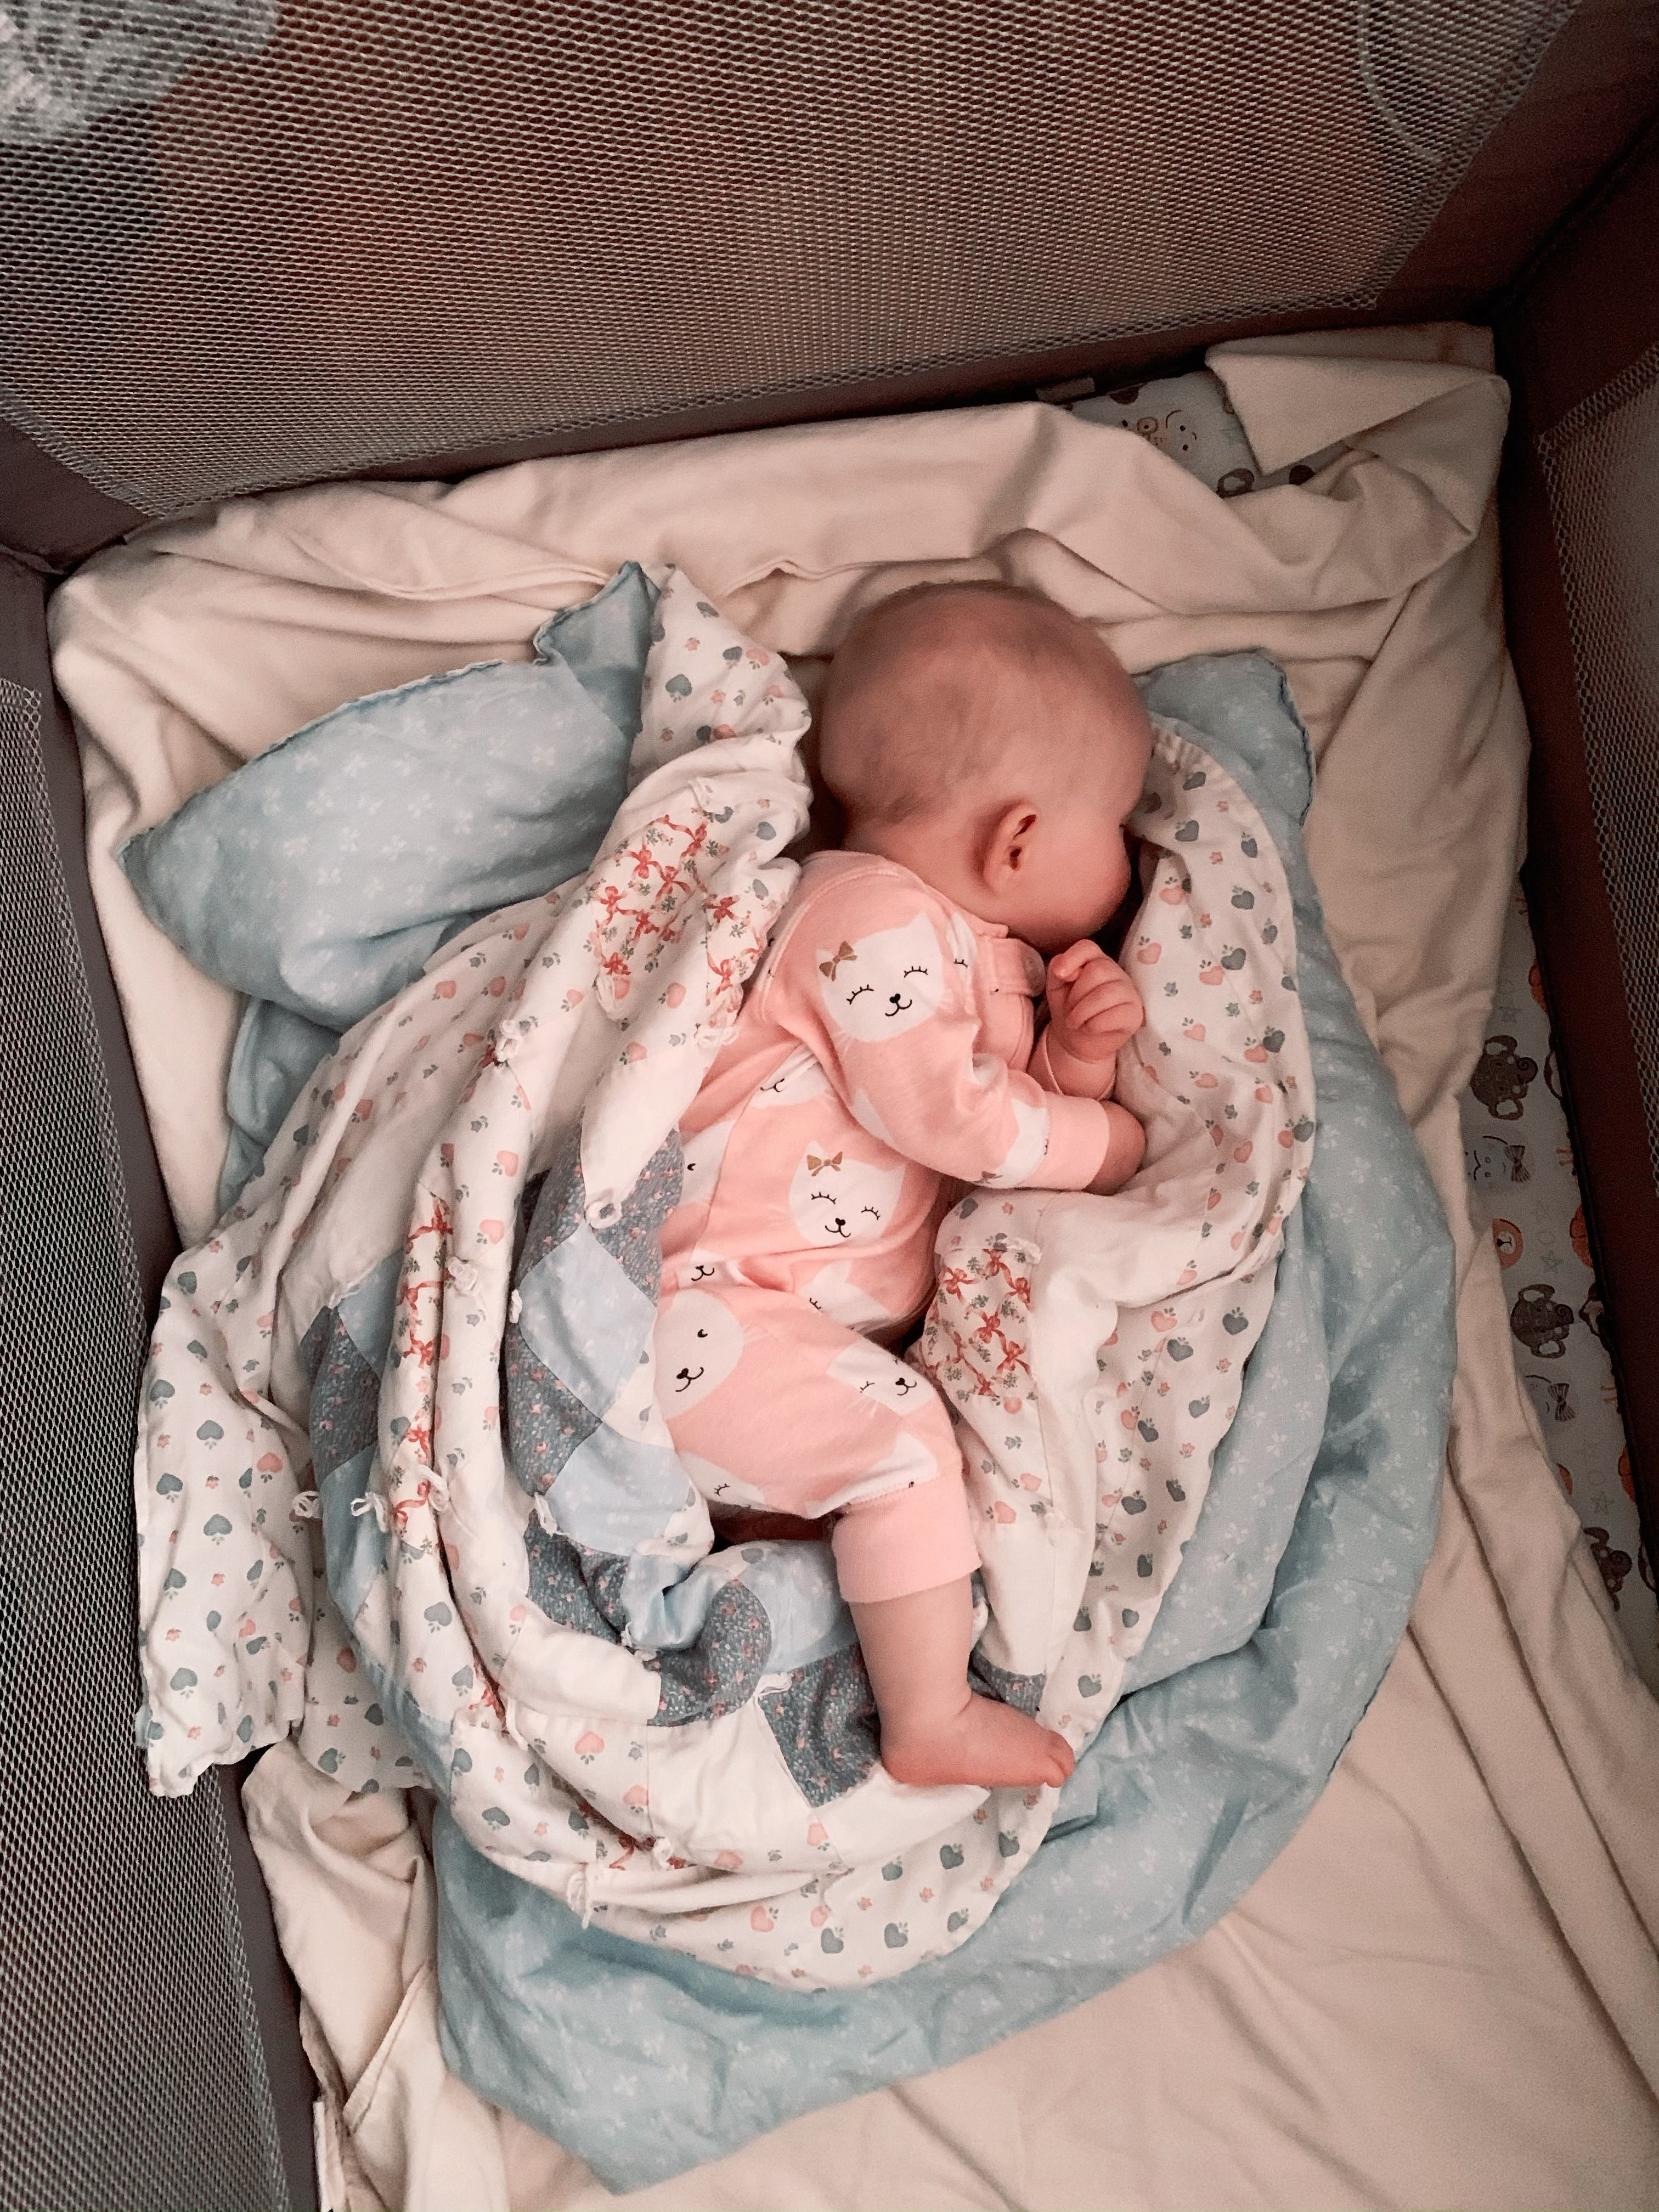 Pin By Kennadee On Babies With Images Cute Baby Pictures